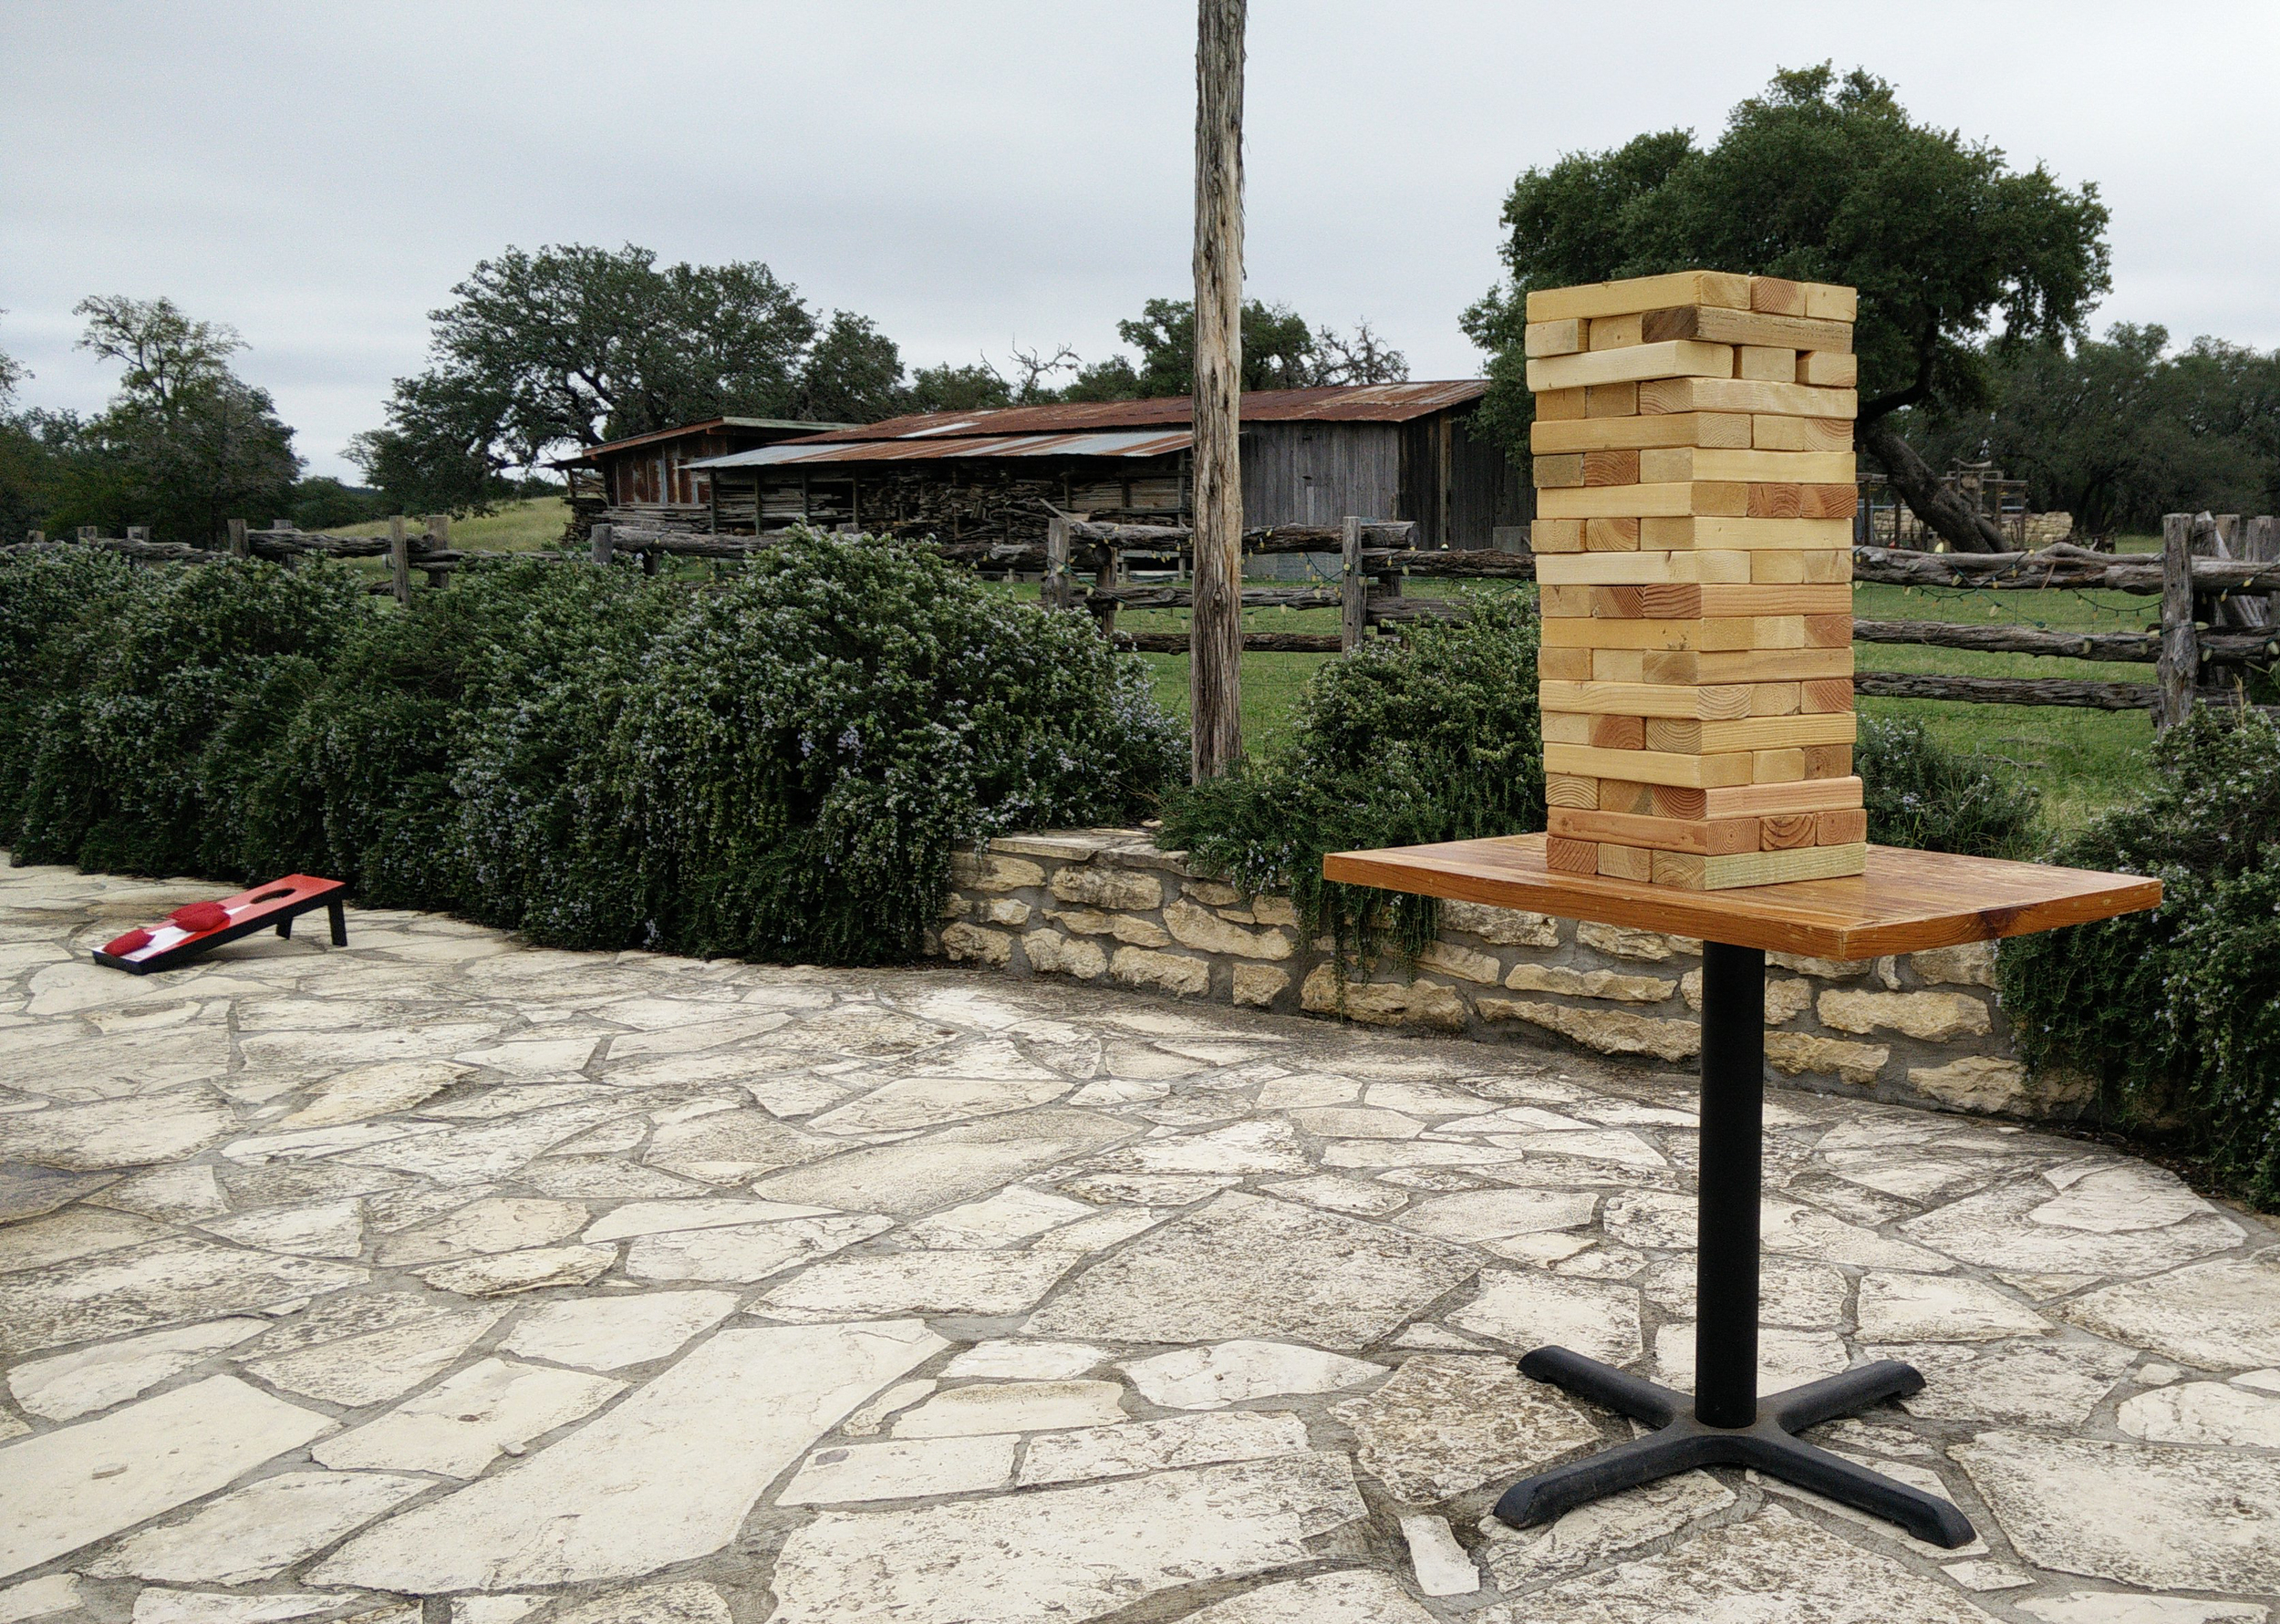 Giant Jenga, with Bags/Cornhole in the background.